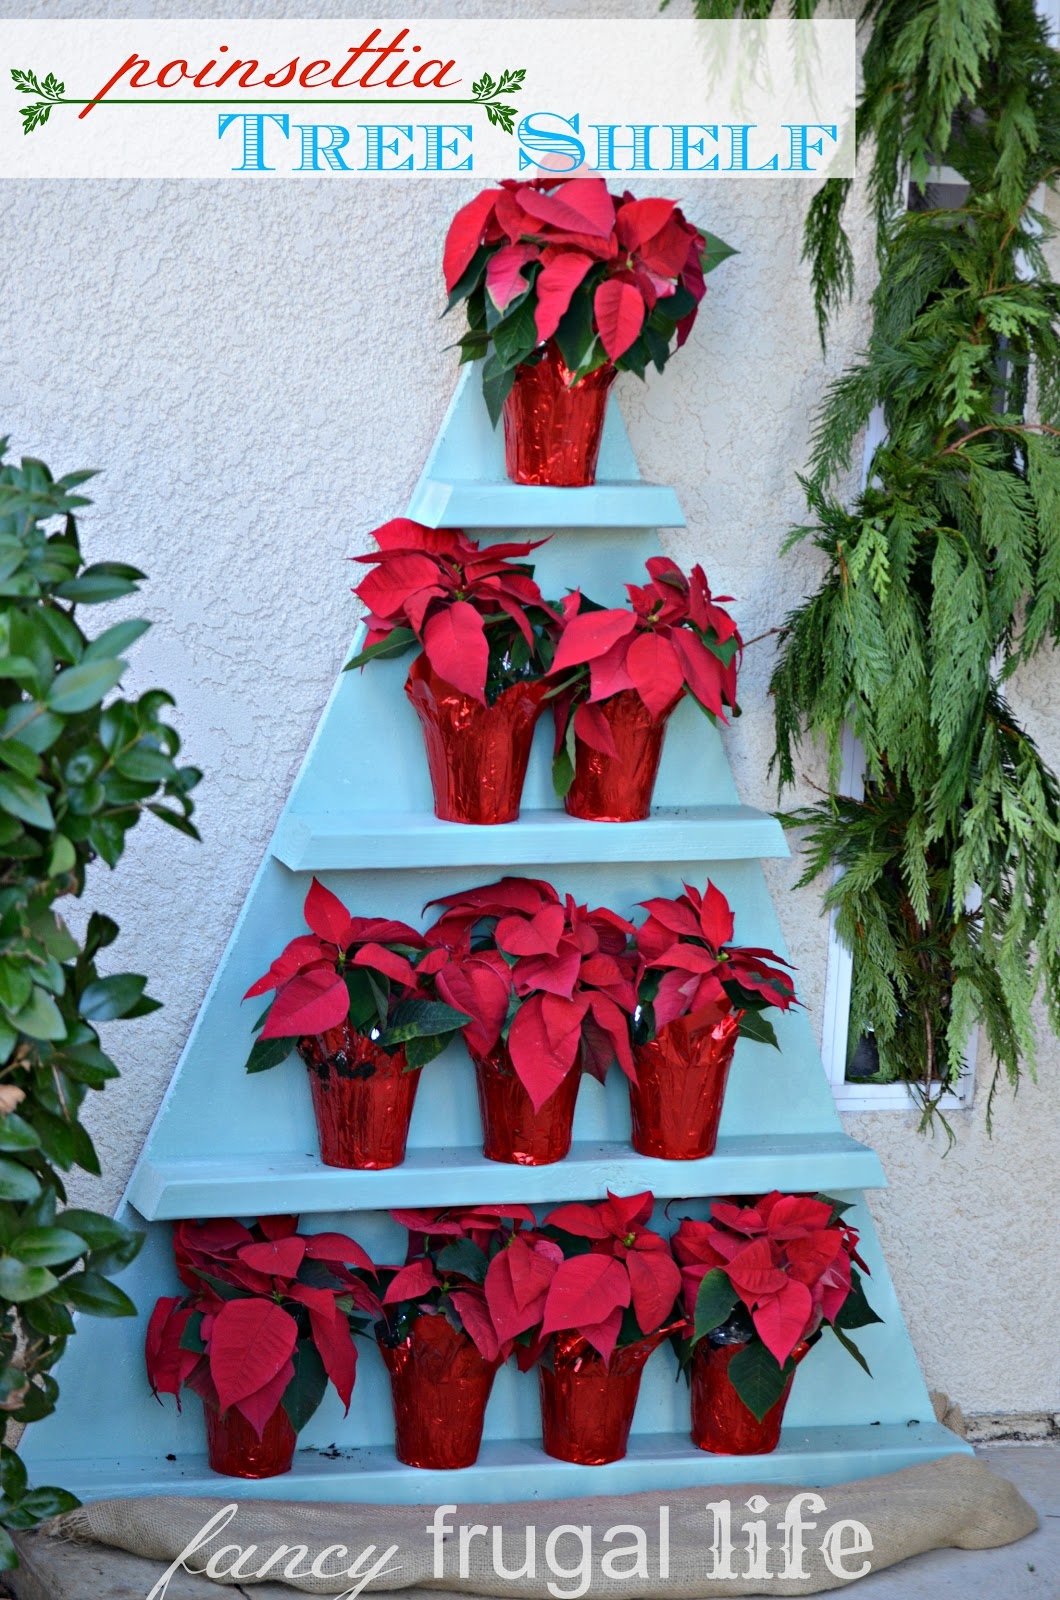 Stacked Poinsettia Tree Shelf Christmas Wreath Chandelier